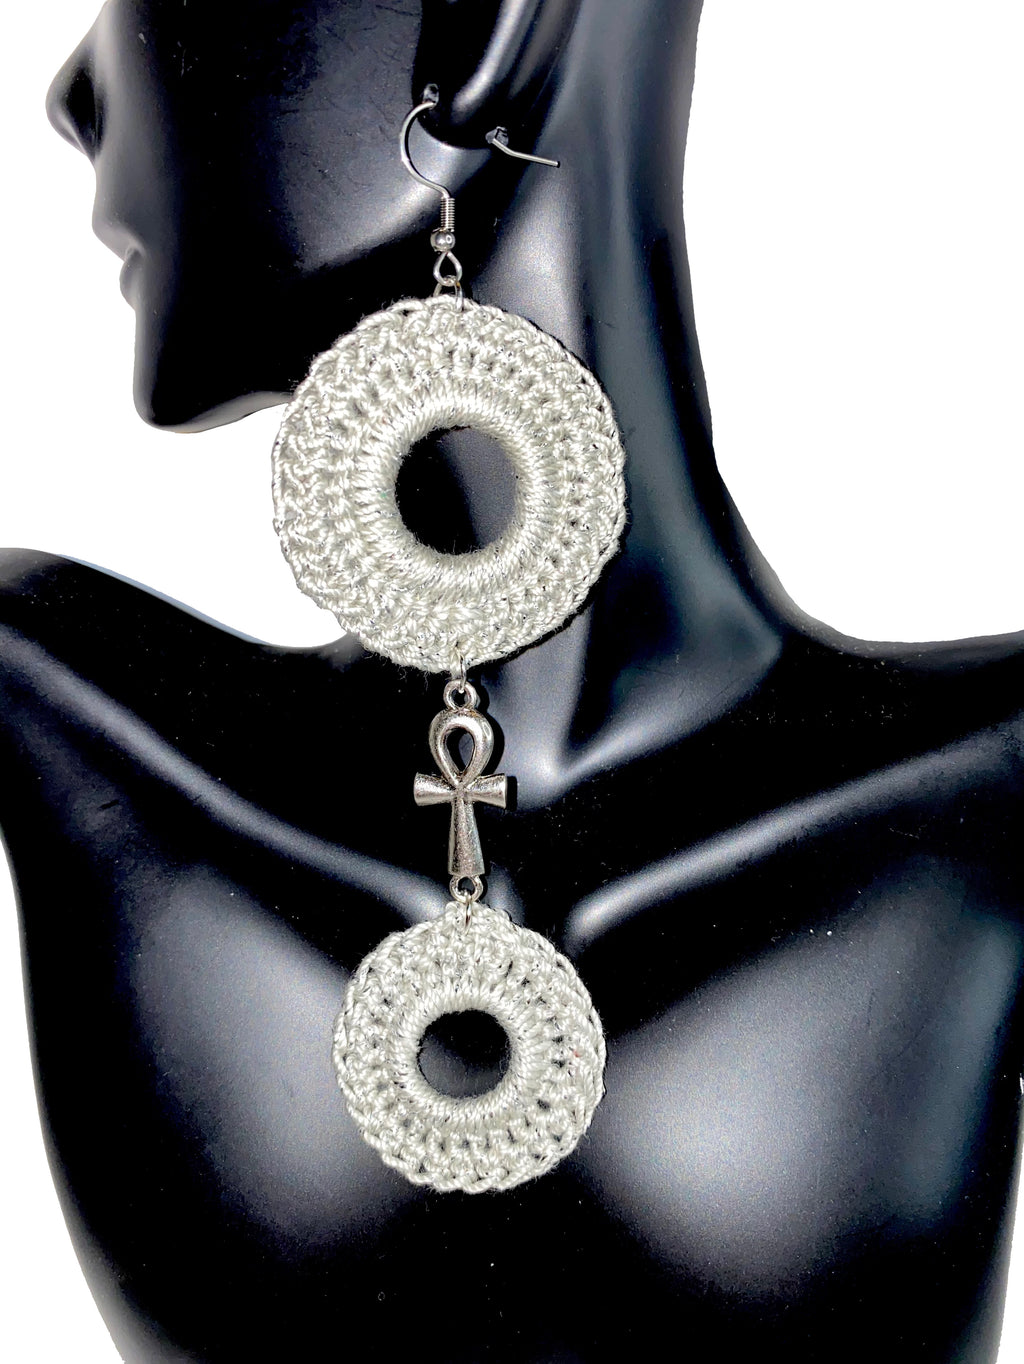 Silver Crochet Earrings w/Ankh Charm